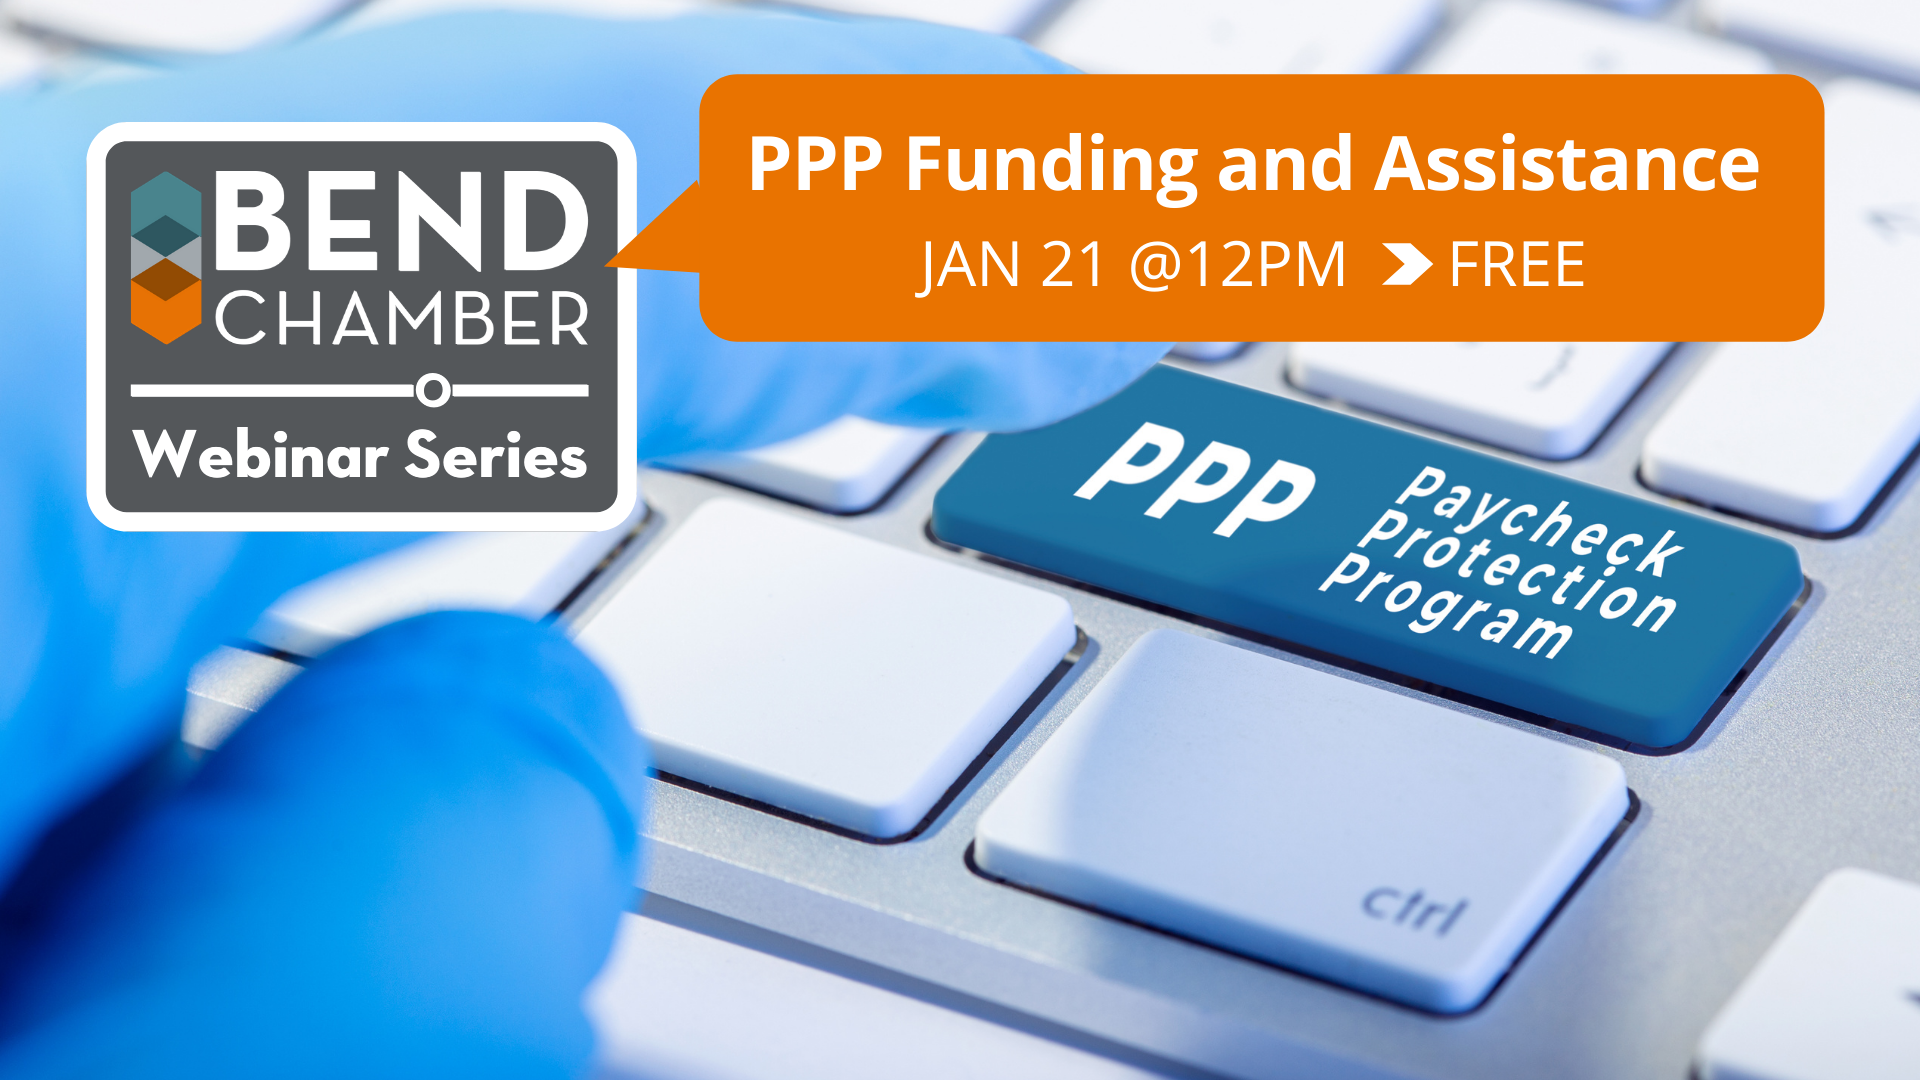 PPP Funding and Assistance